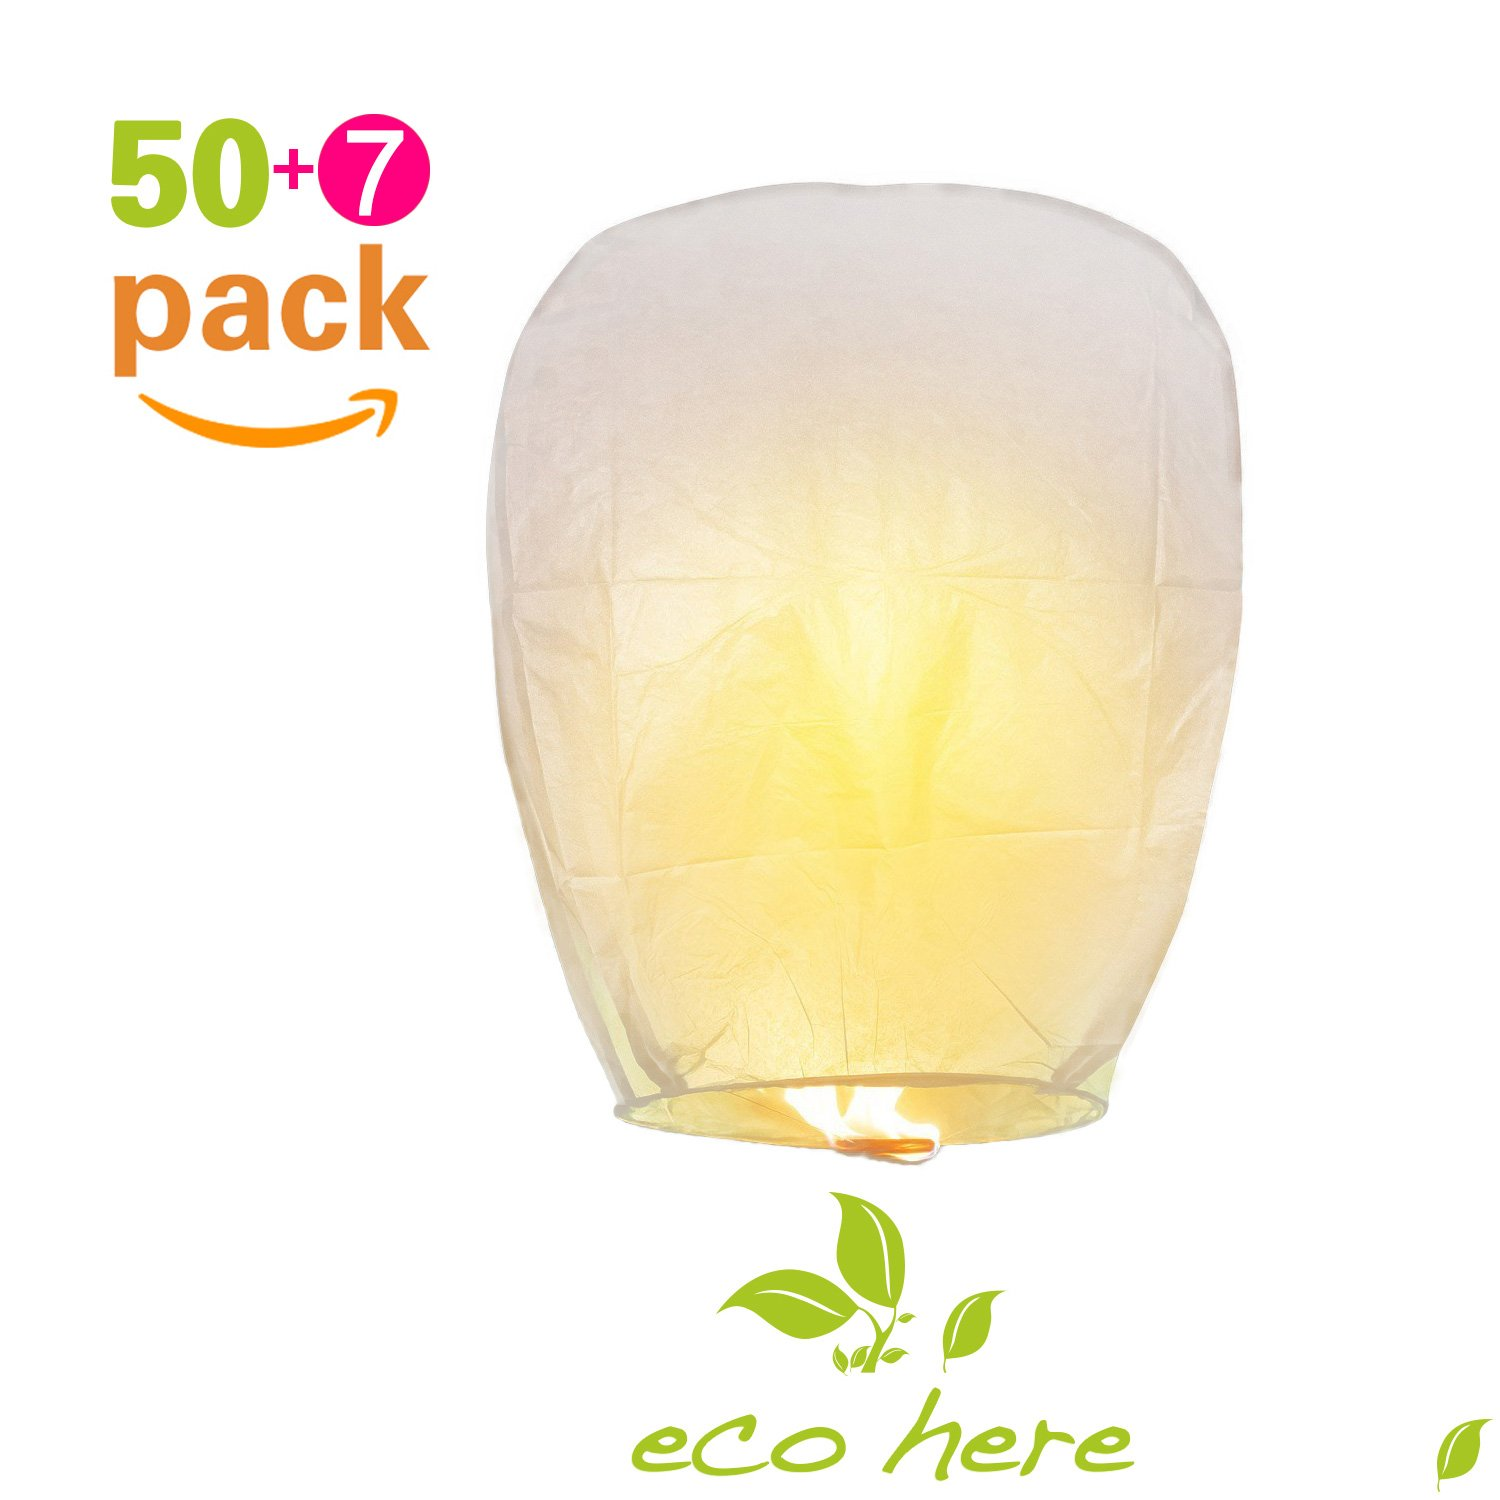 Chinese Lanterns, Paper Wishing Lanterns, Eco Friendly Lanterns, with Wax Block for Lighting, Ideal for Wedding, Birthday, Christmas, Parties and More (50PCS, White) - Sky Lanterns